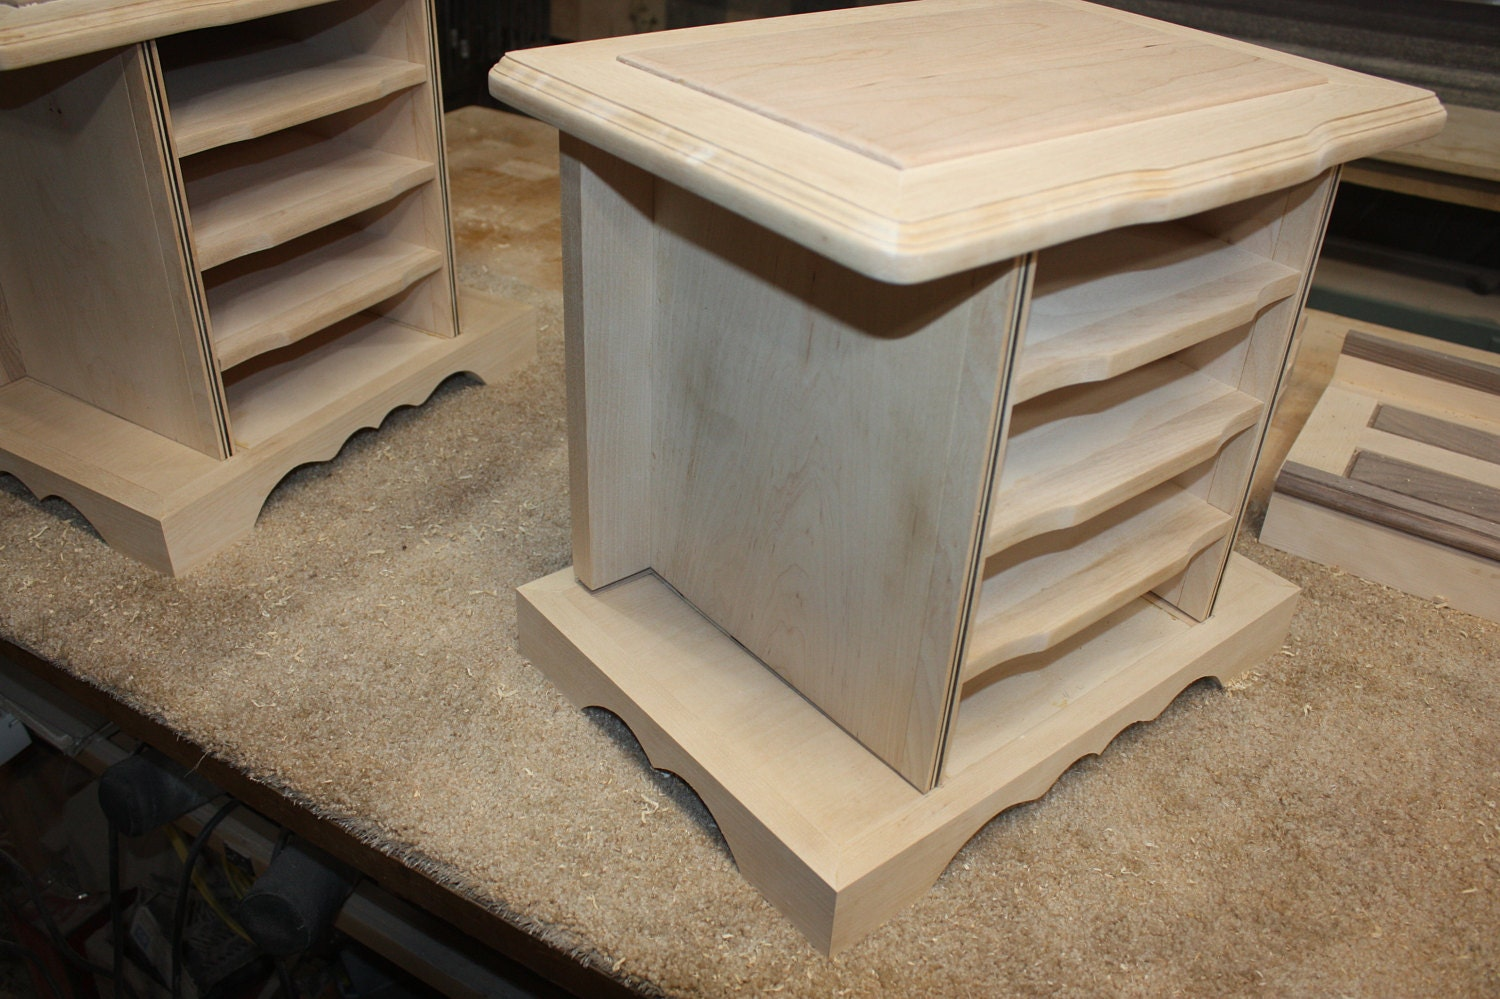 Attaching the Lid and Base onto a 4 Drawer Jewelry Box